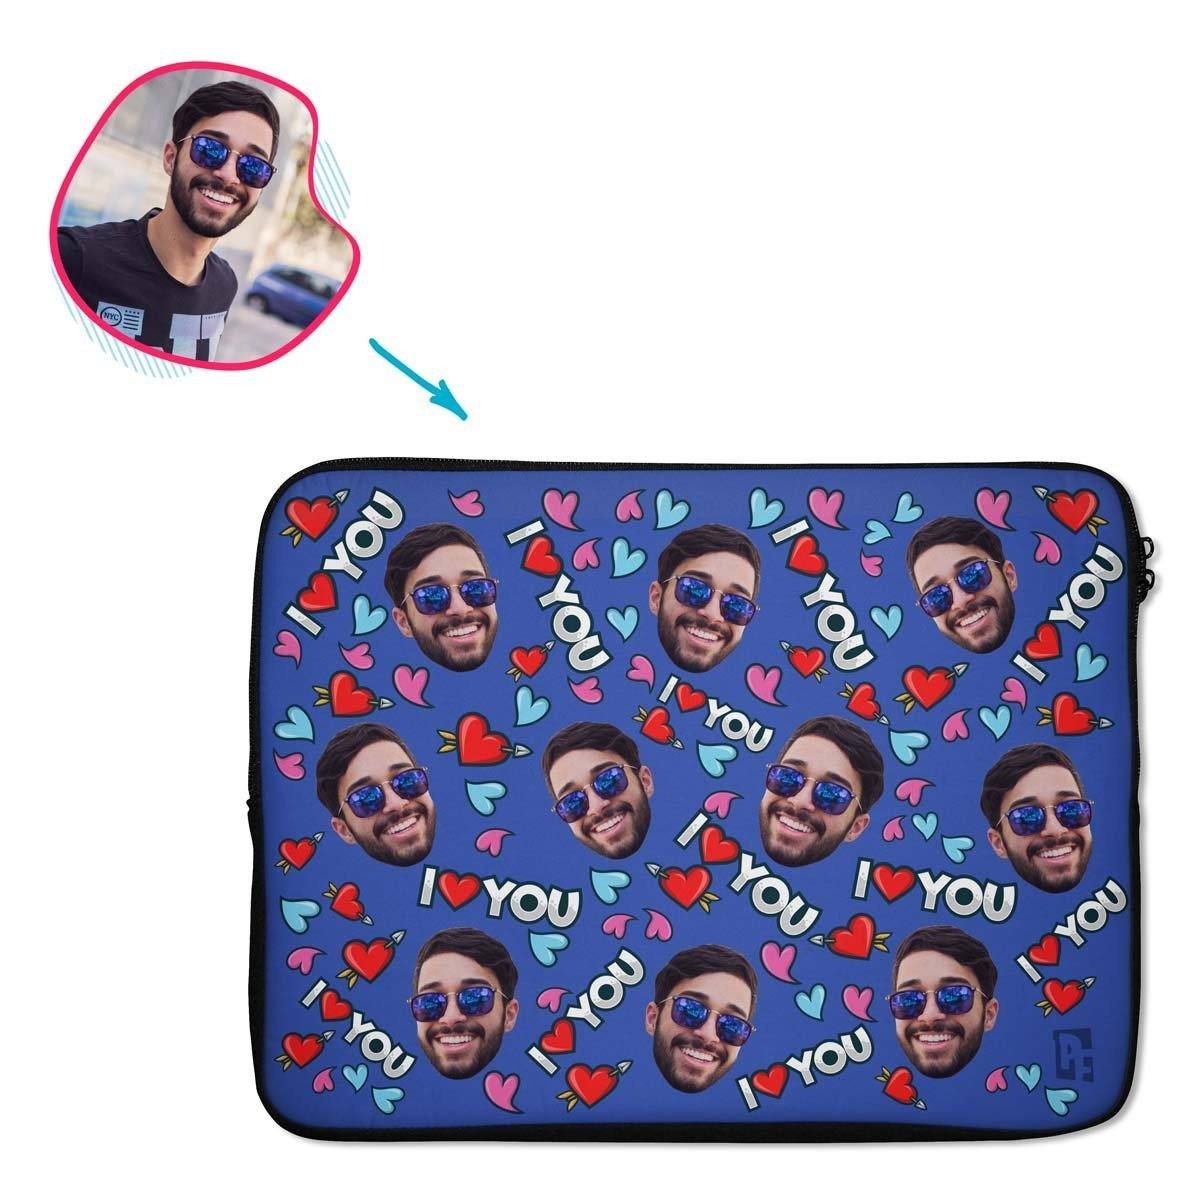 darkblue Love You laptop sleeve personalized with photo of face printed on them